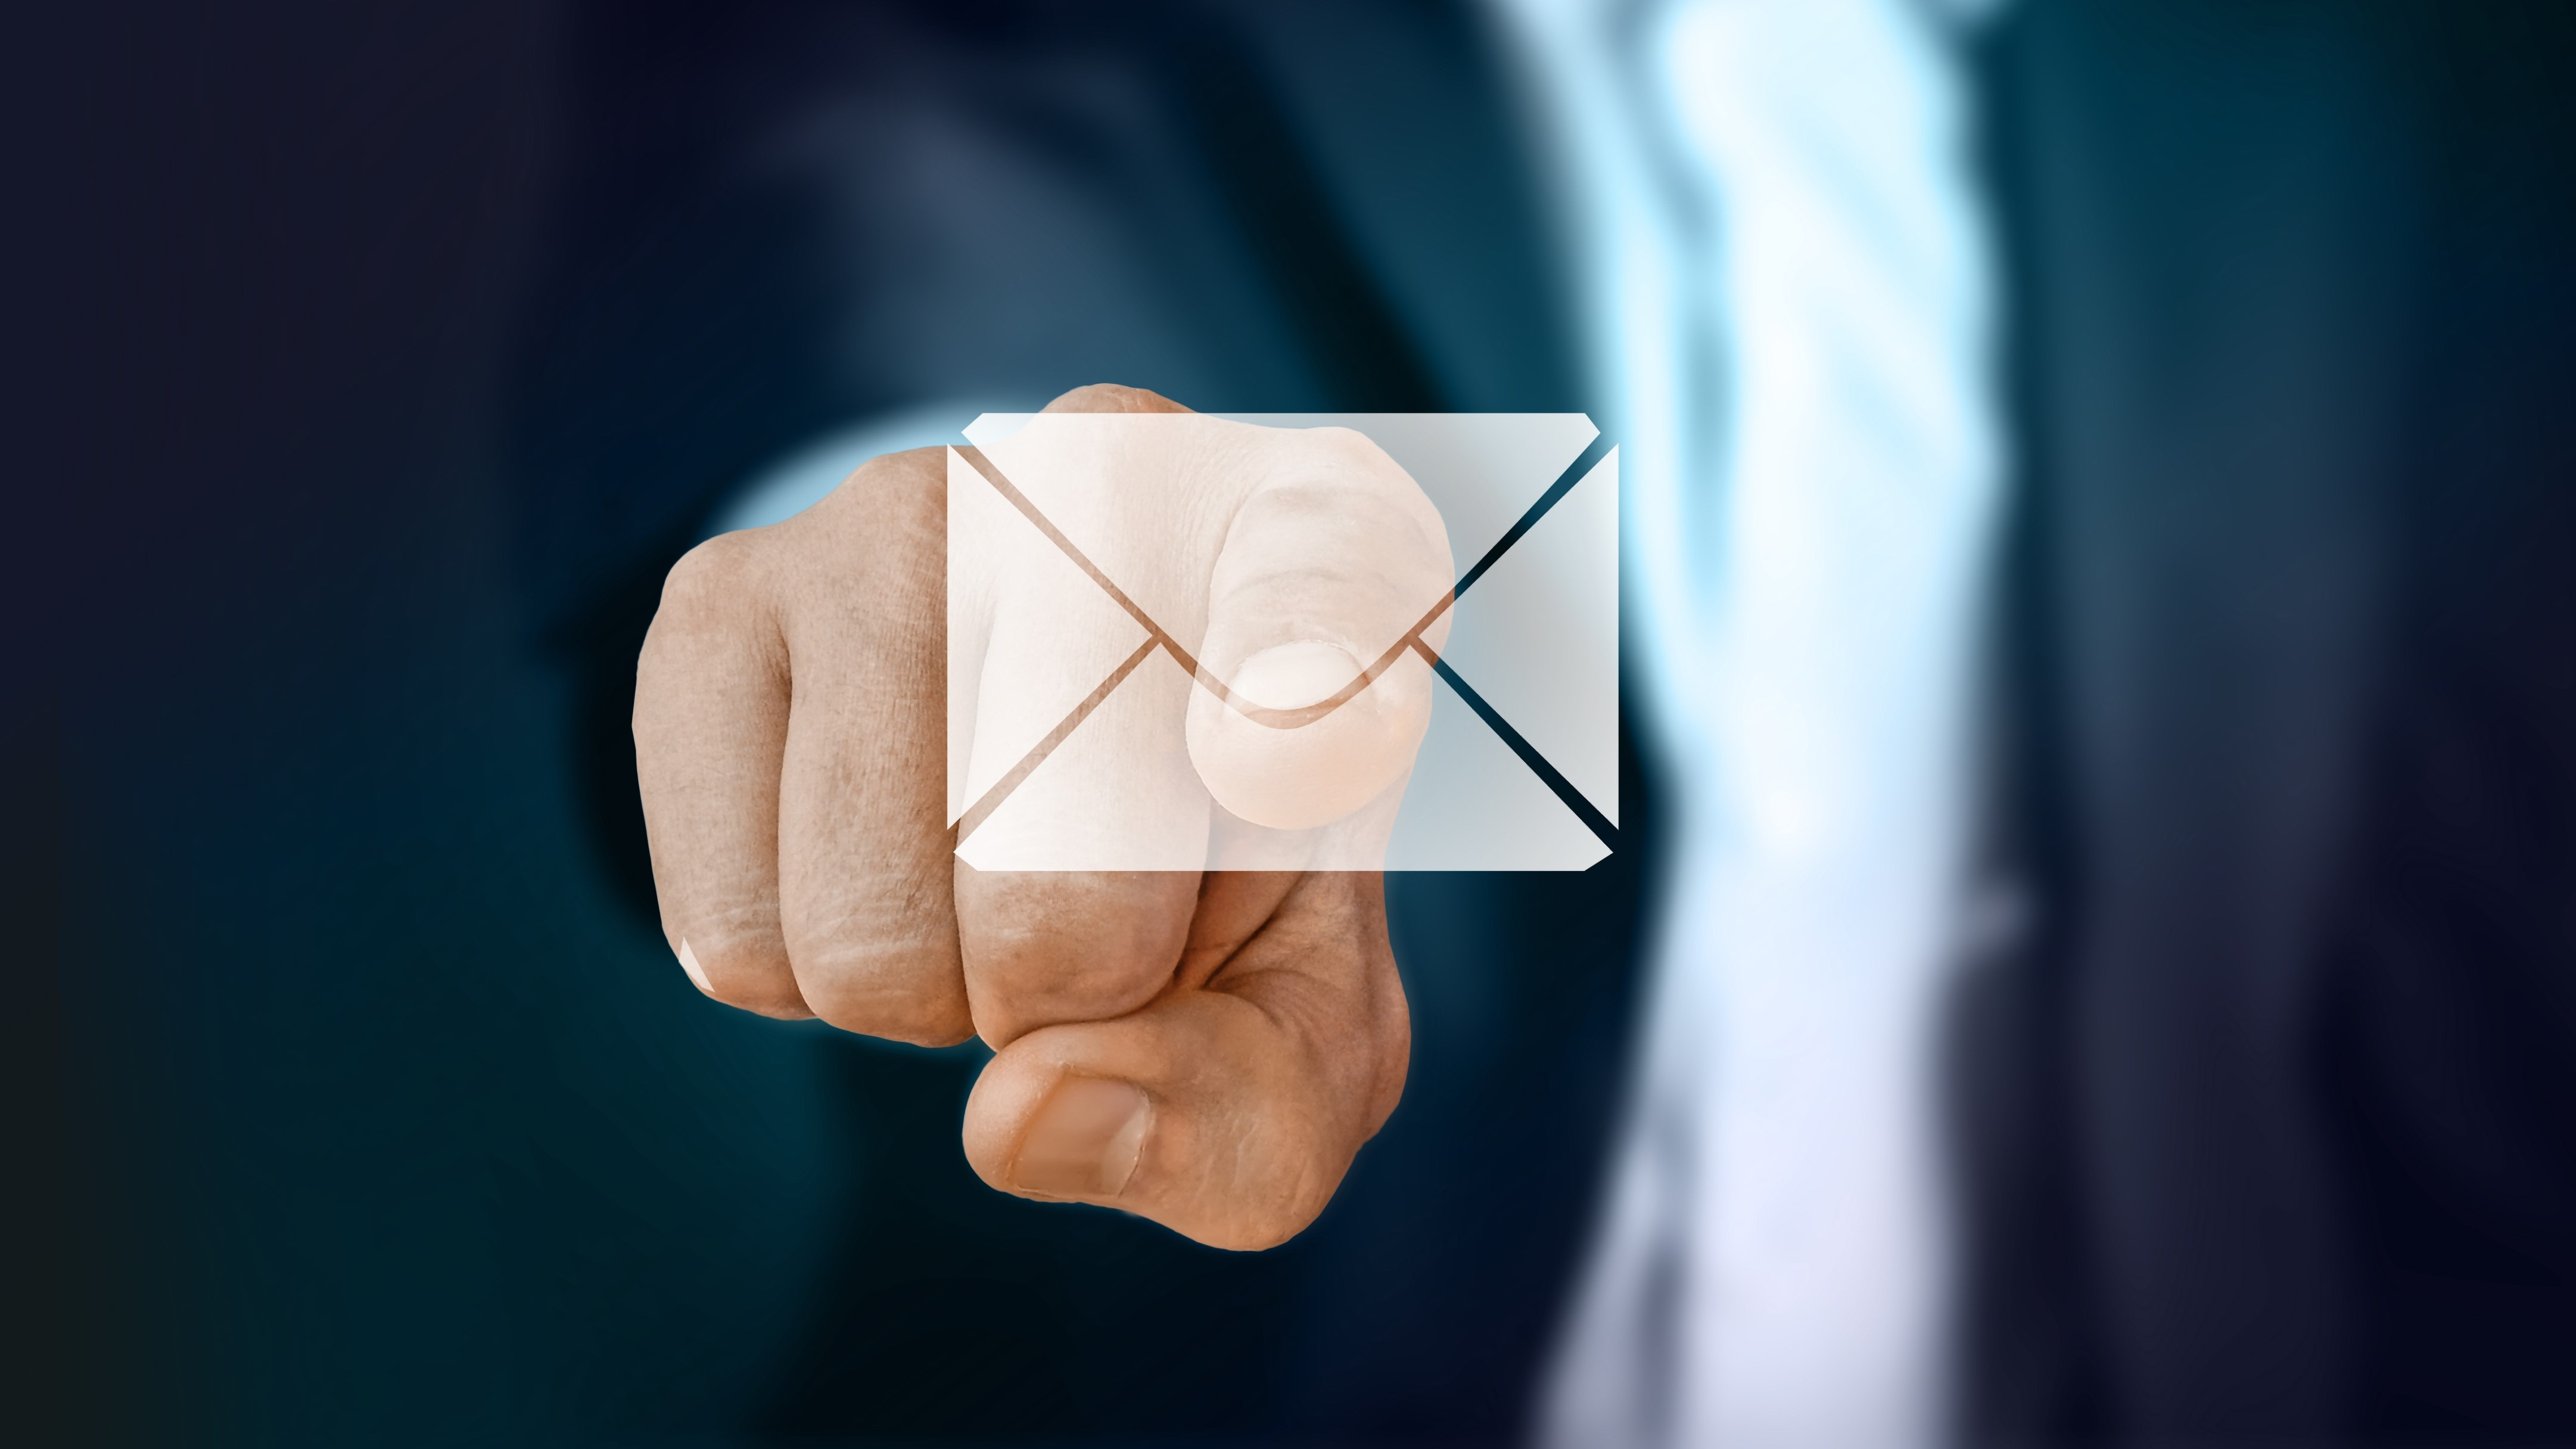 Millions of malicious emails are still slipping past security filters